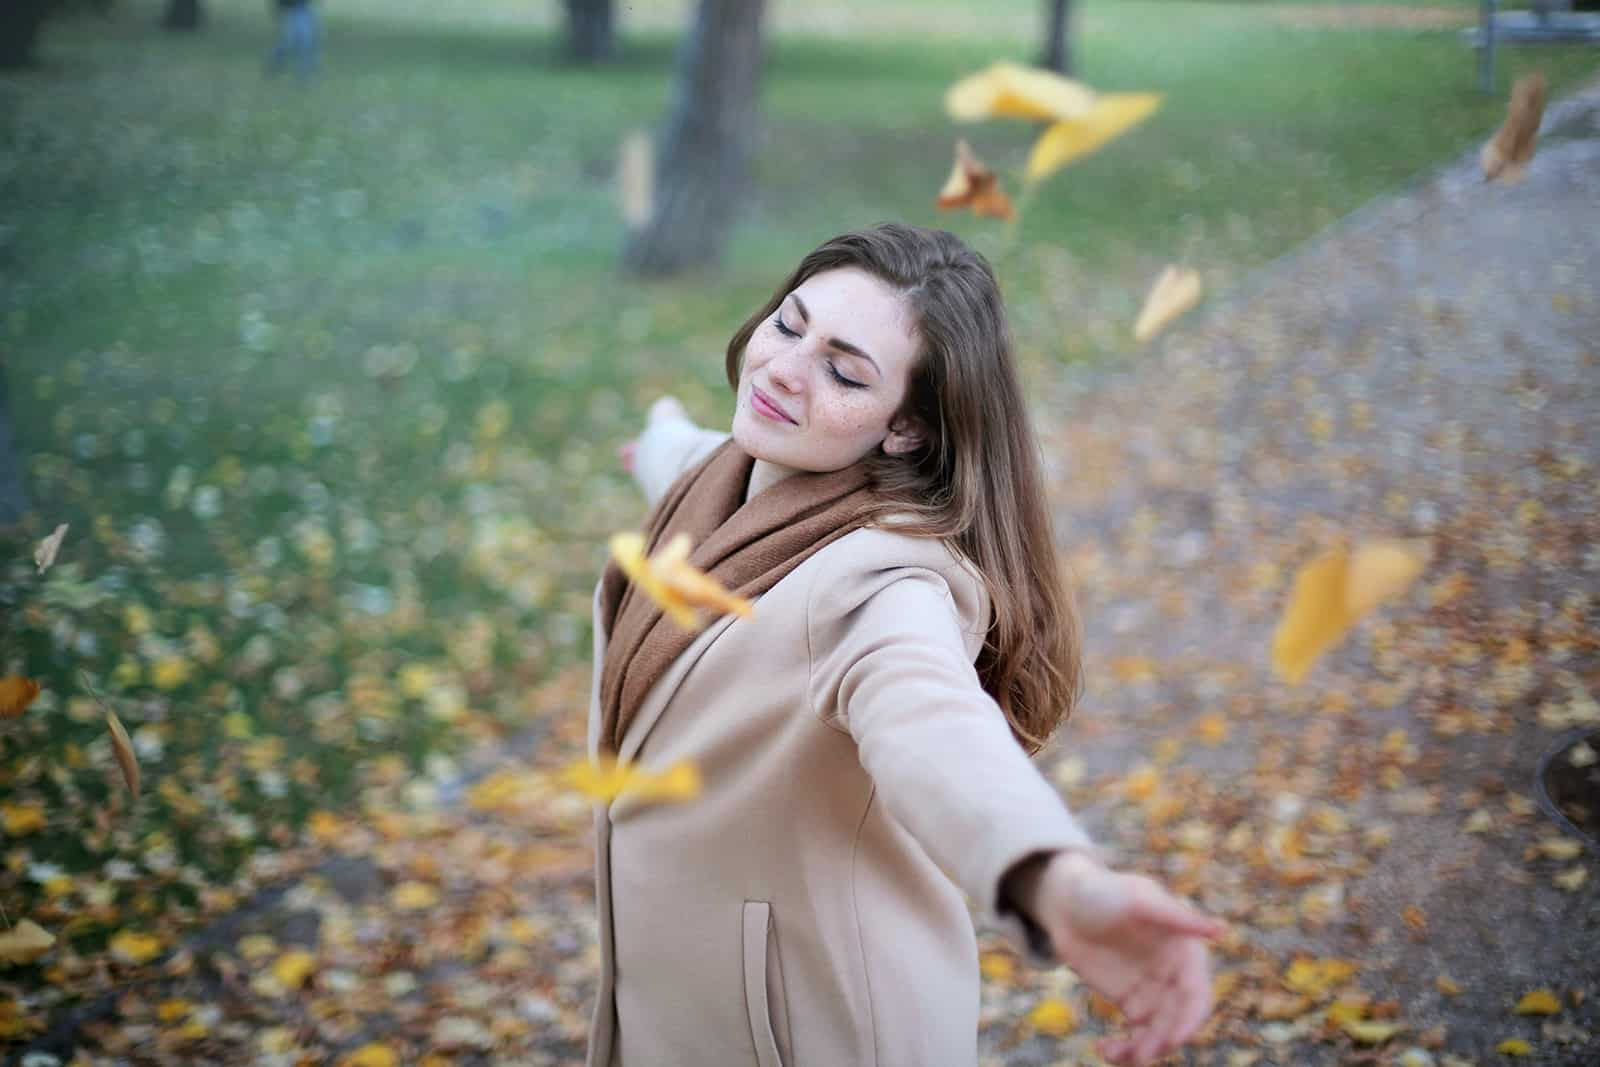 a calm woman standing under the falling leaves with eyes closed